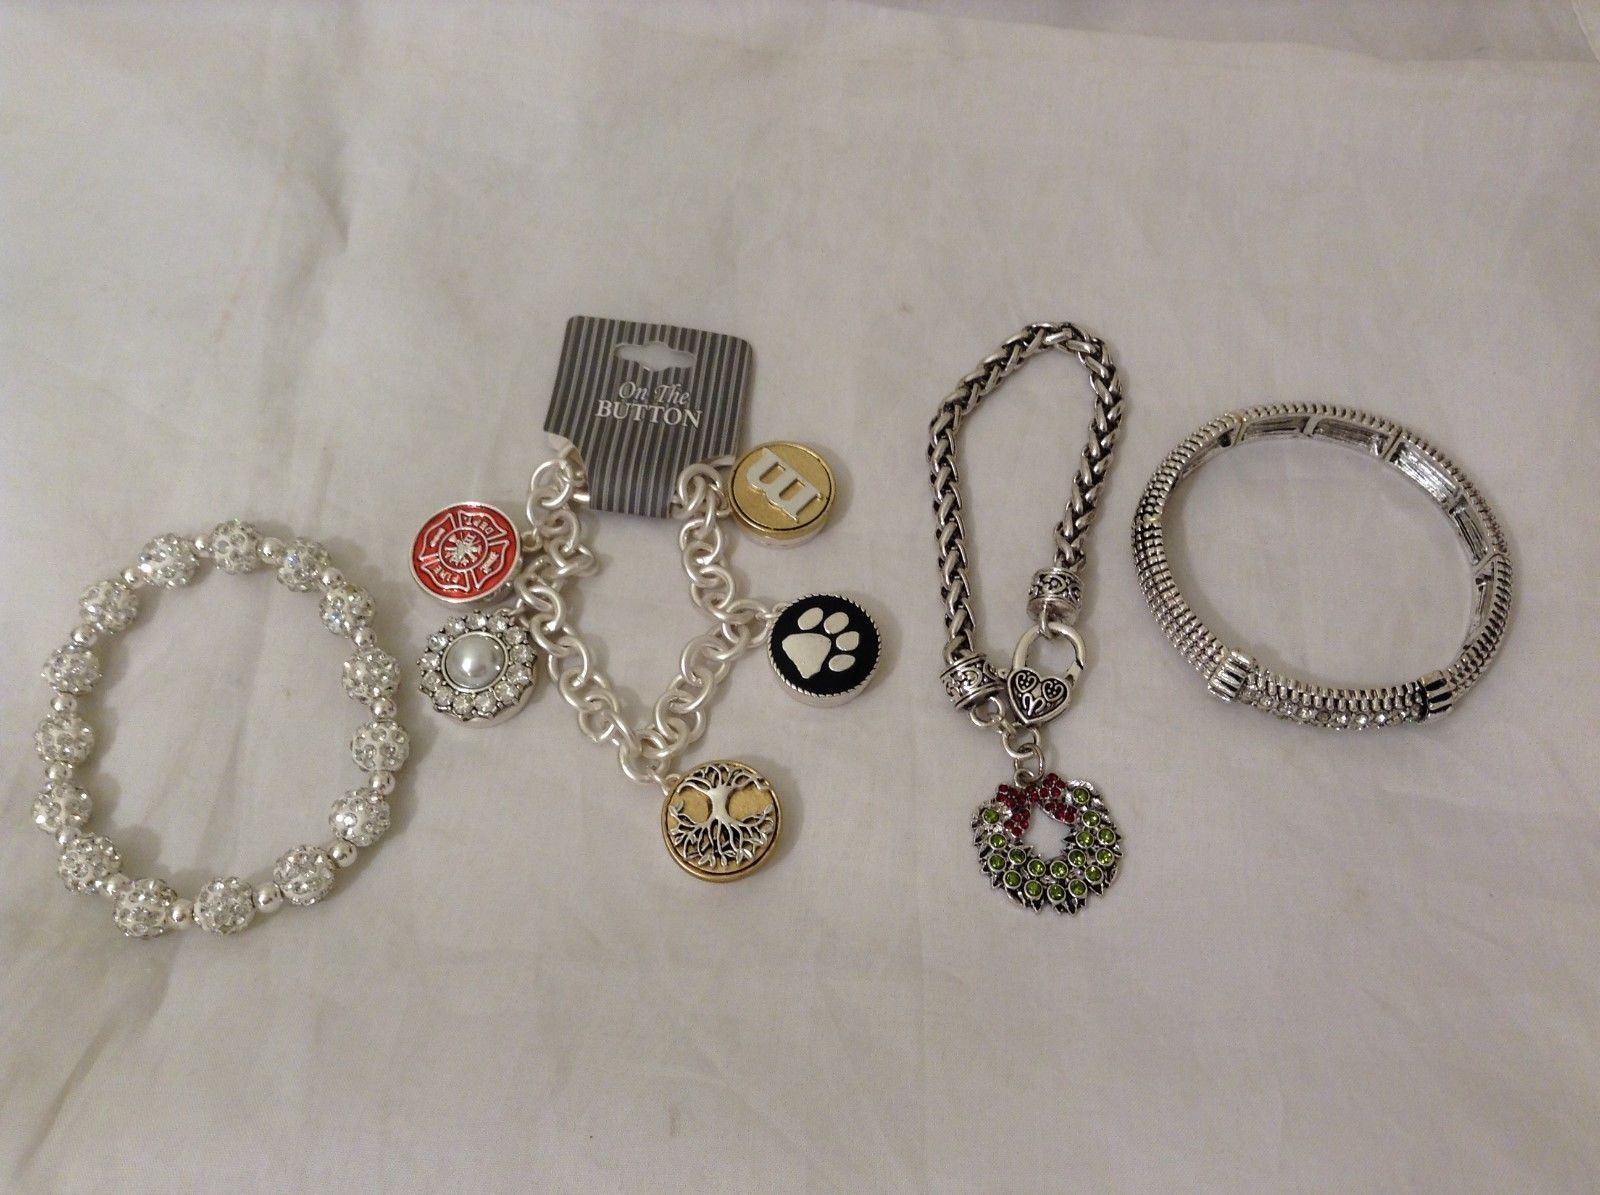 4 New Various Festive Bracelets in Silver Color